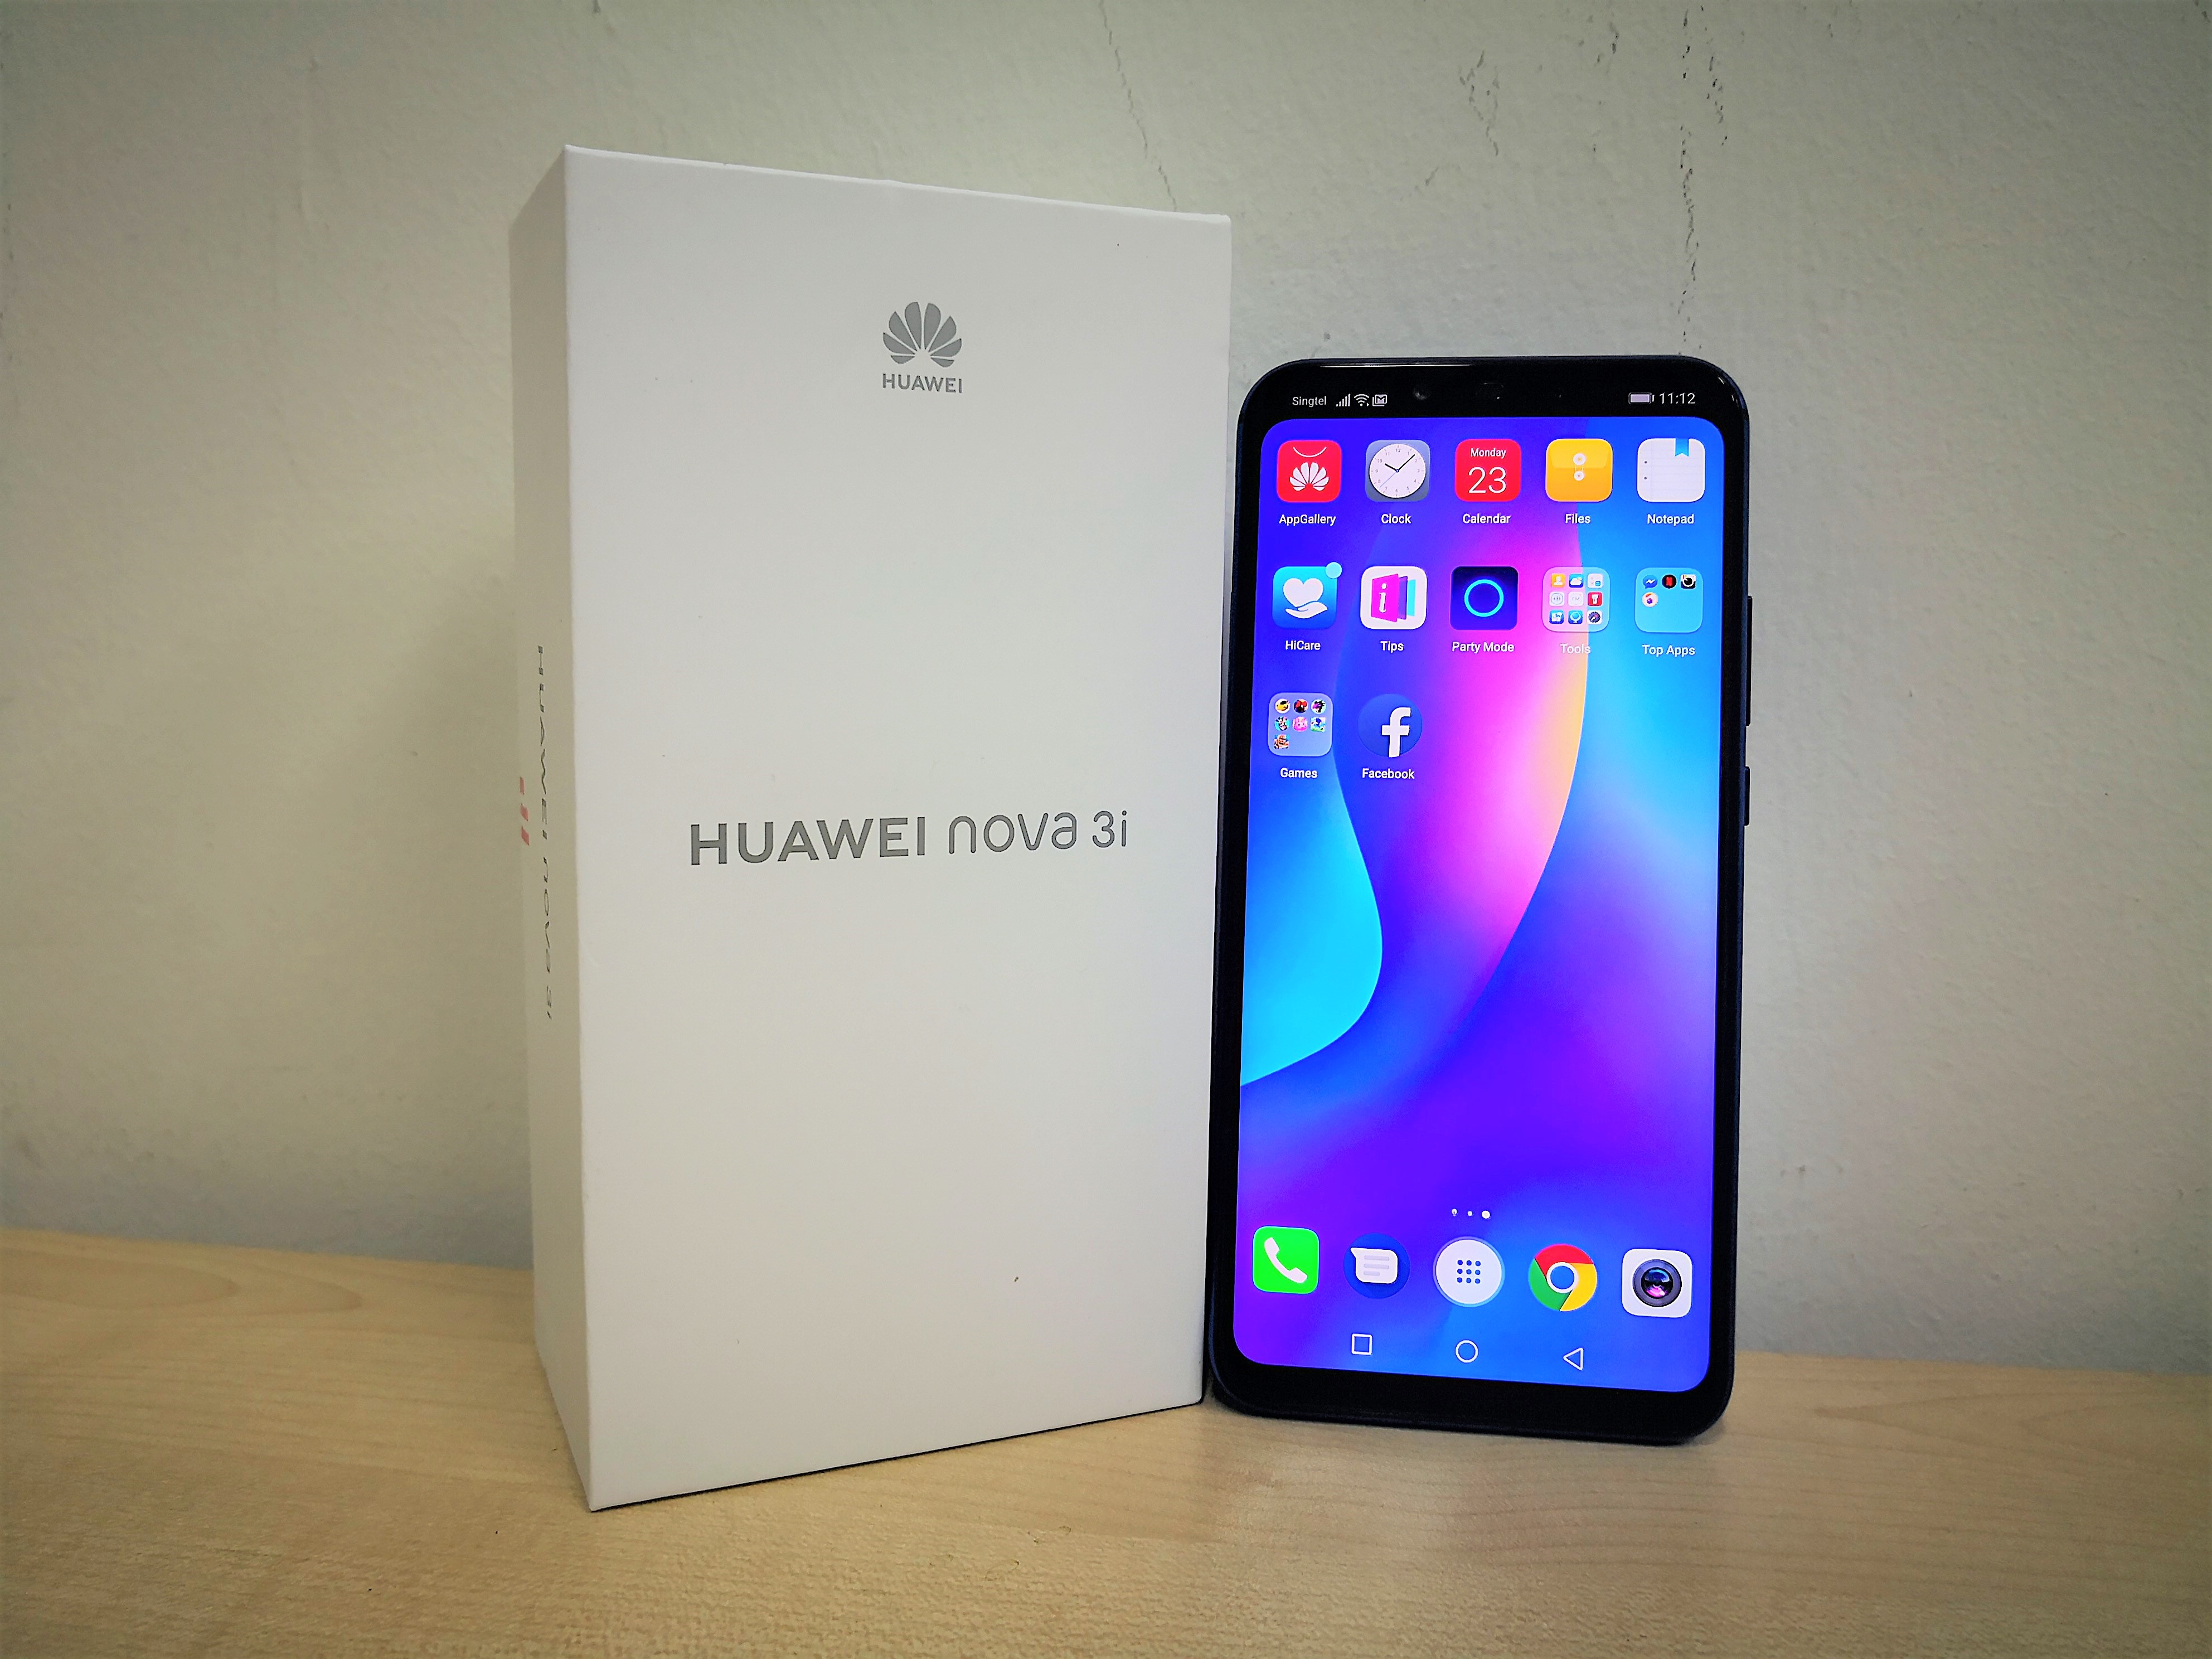 Huawei nova 3i - Unveiled and Unboxed - The Tech Revolutionist